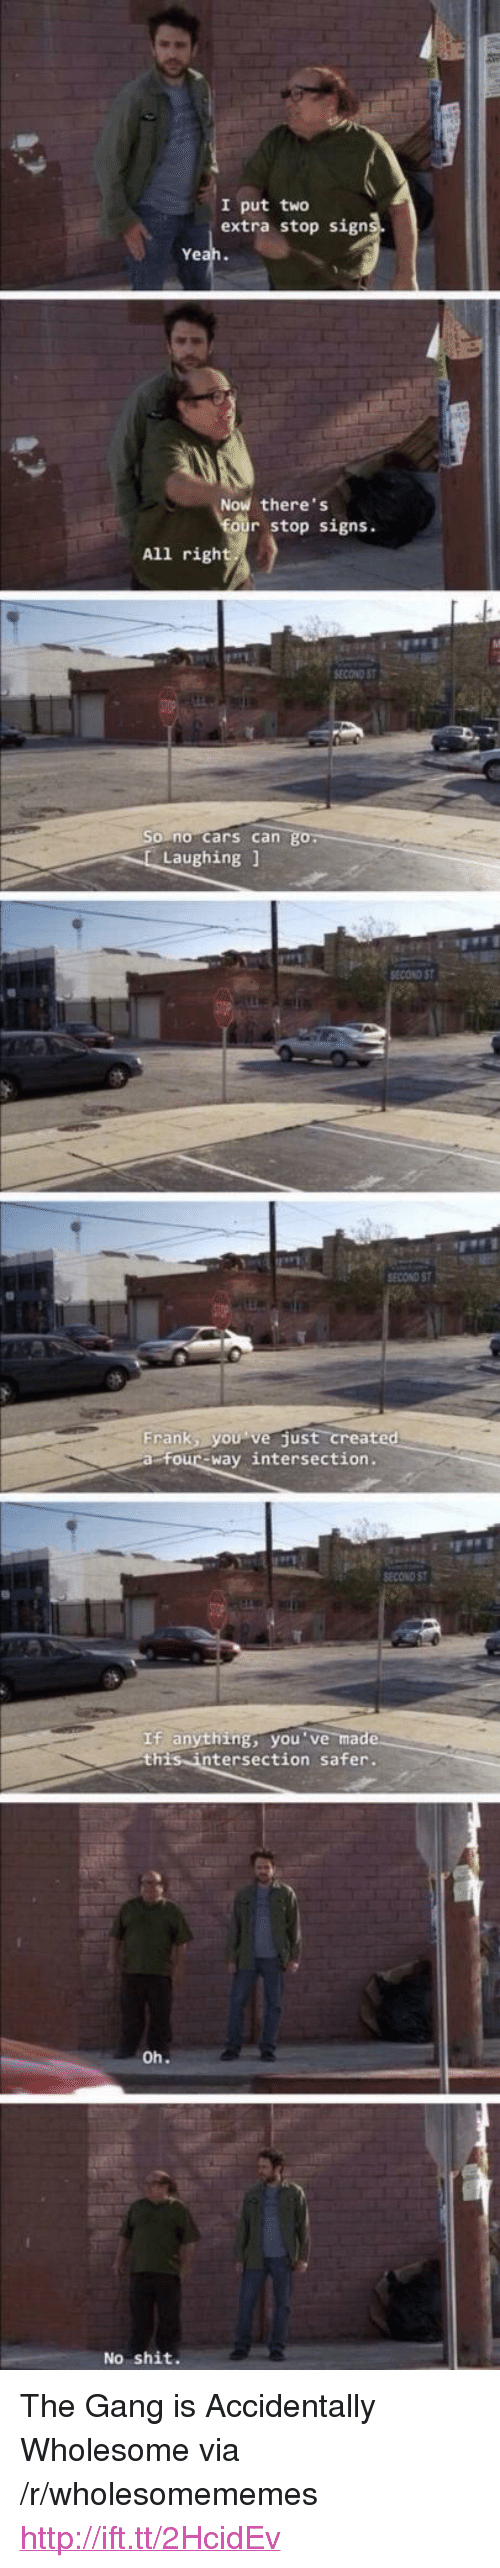 "Cars, Shit, and Gang: I put two  extra stop sign  Ye  Now there's  stop signs.  All righ  no cars can  Laughing1  SECOND ST  Frankly。 vejust-create  four-way intersection.  SECOND ST  If anything, you've ma  this intersection safer.  No shit. <p>The Gang is Accidentally Wholesome via /r/wholesomememes <a href=""http://ift.tt/2HcidEv"">http://ift.tt/2HcidEv</a></p>"